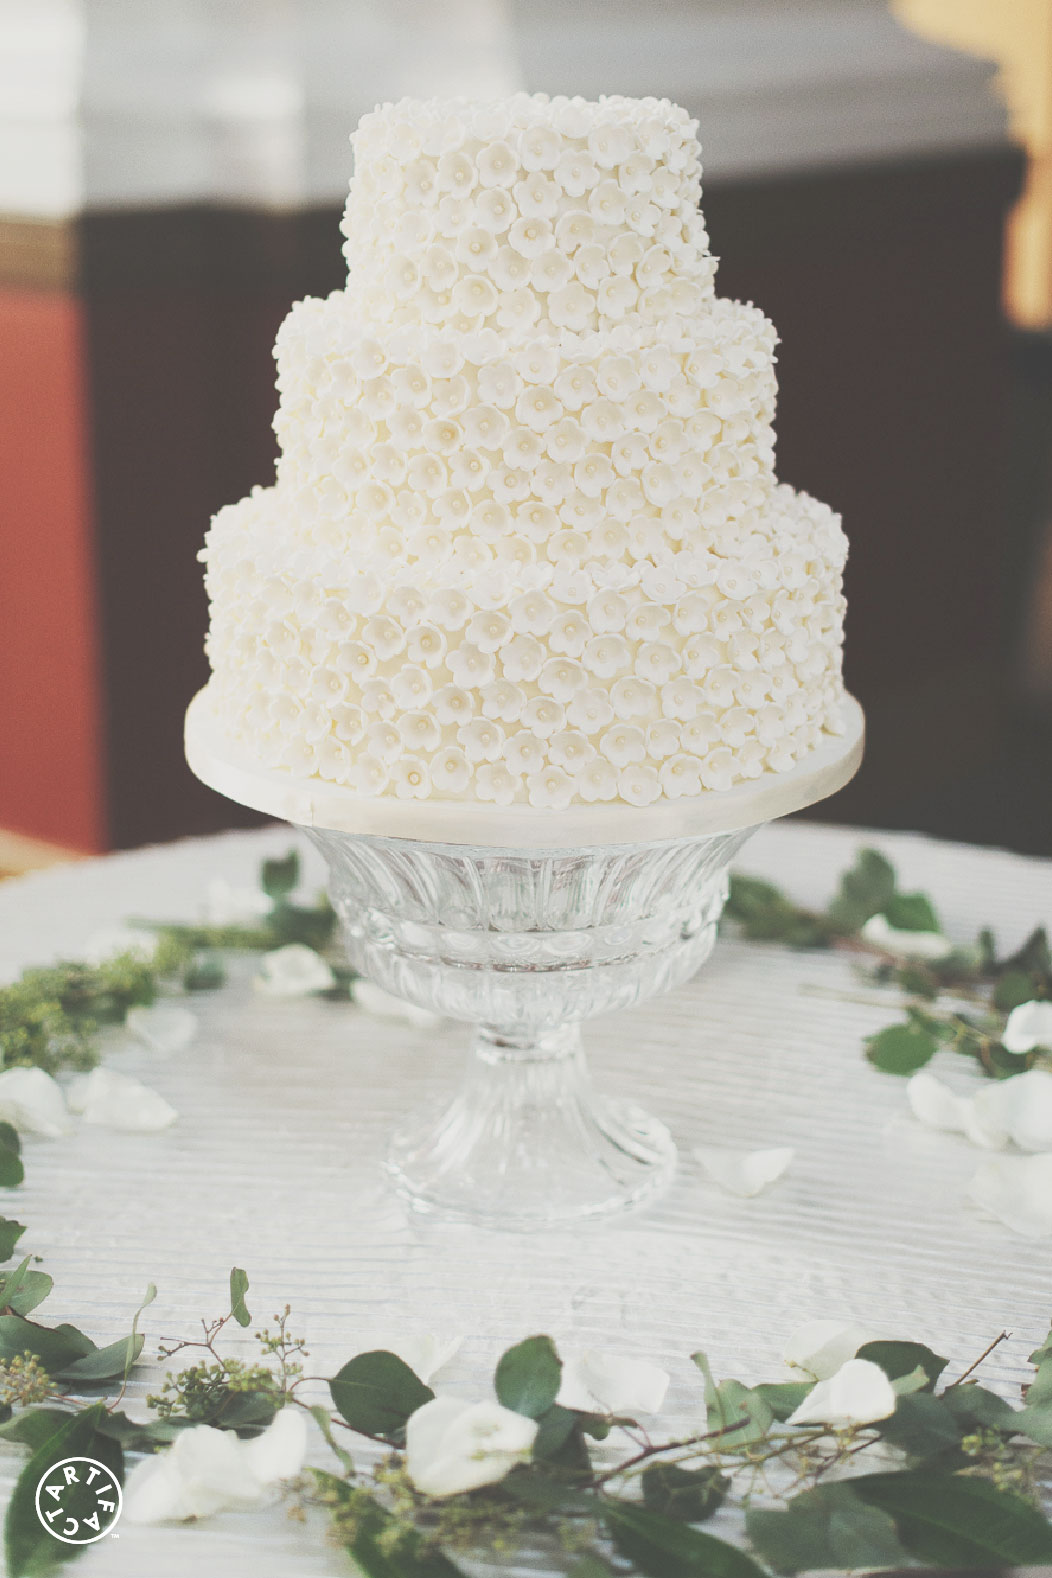 HOW TO MAKE YOUR OWN WEDDING CAKE - Artifact Girl